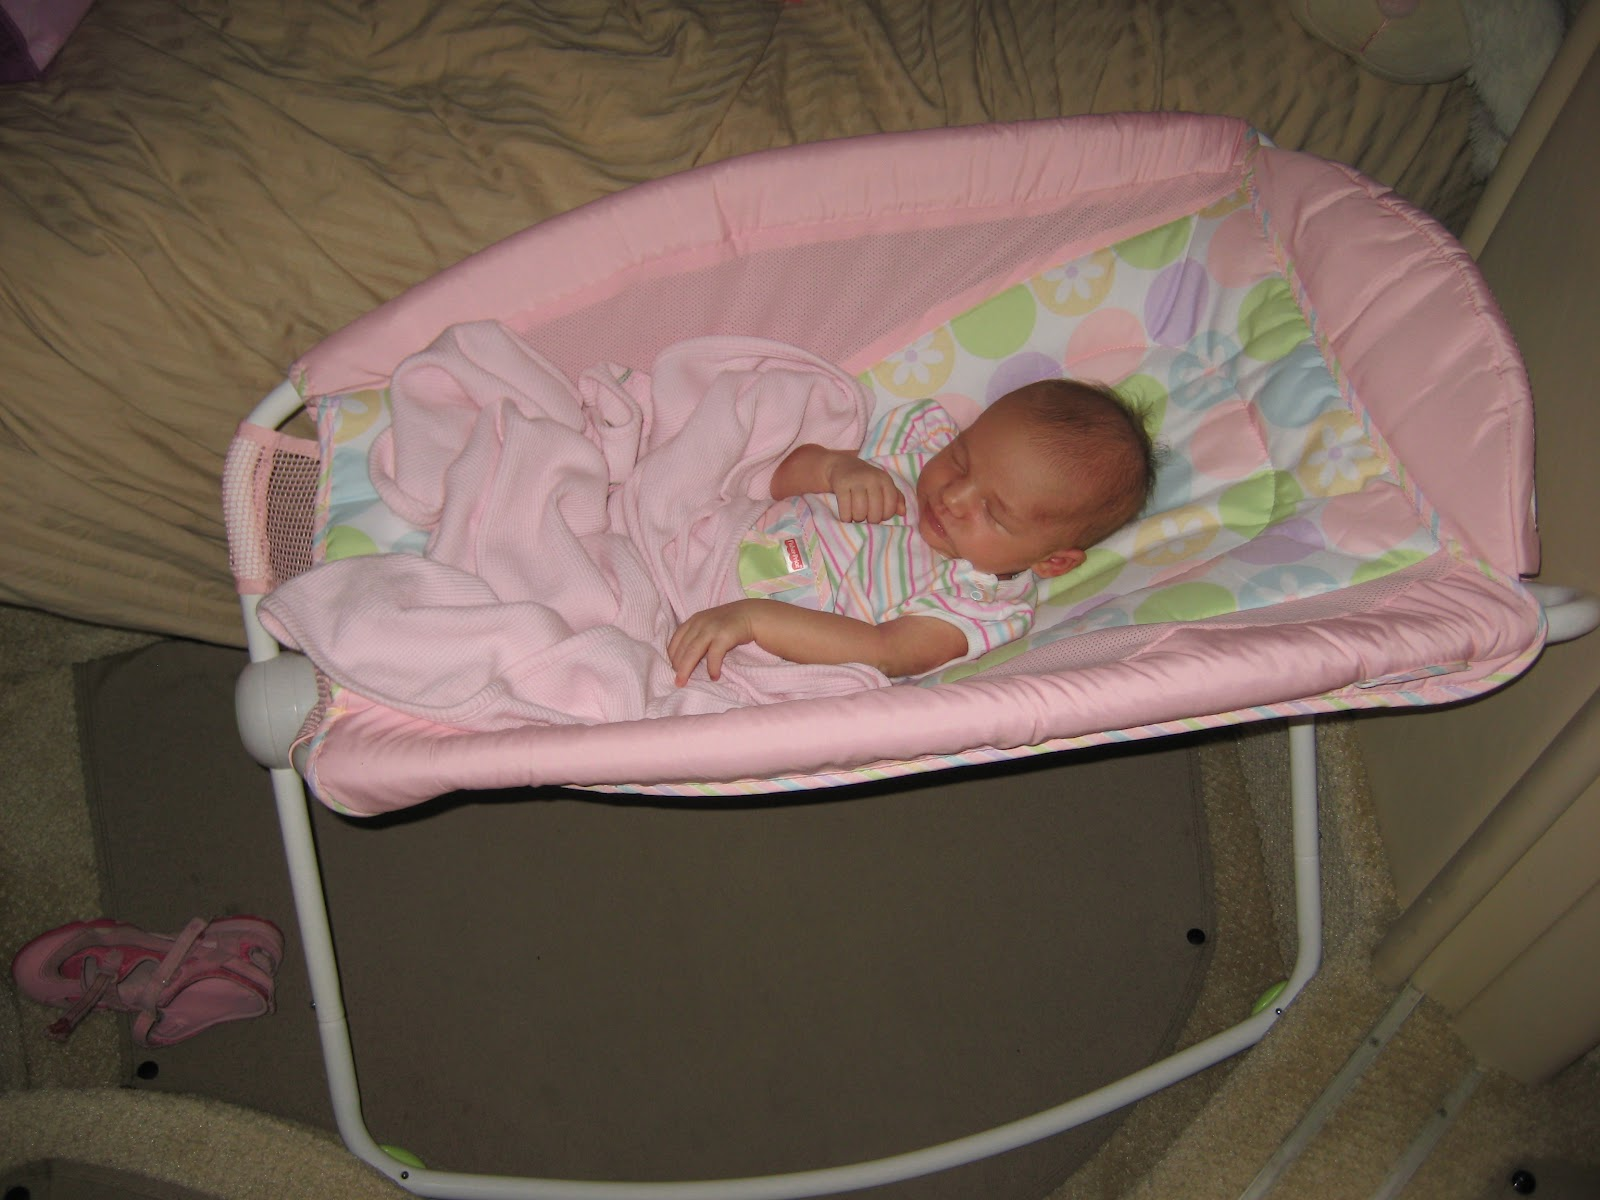 Bed Options for a Newborn Infant or Baby Sleeping on Board ... Newborn Babies Sleeping In Cribs